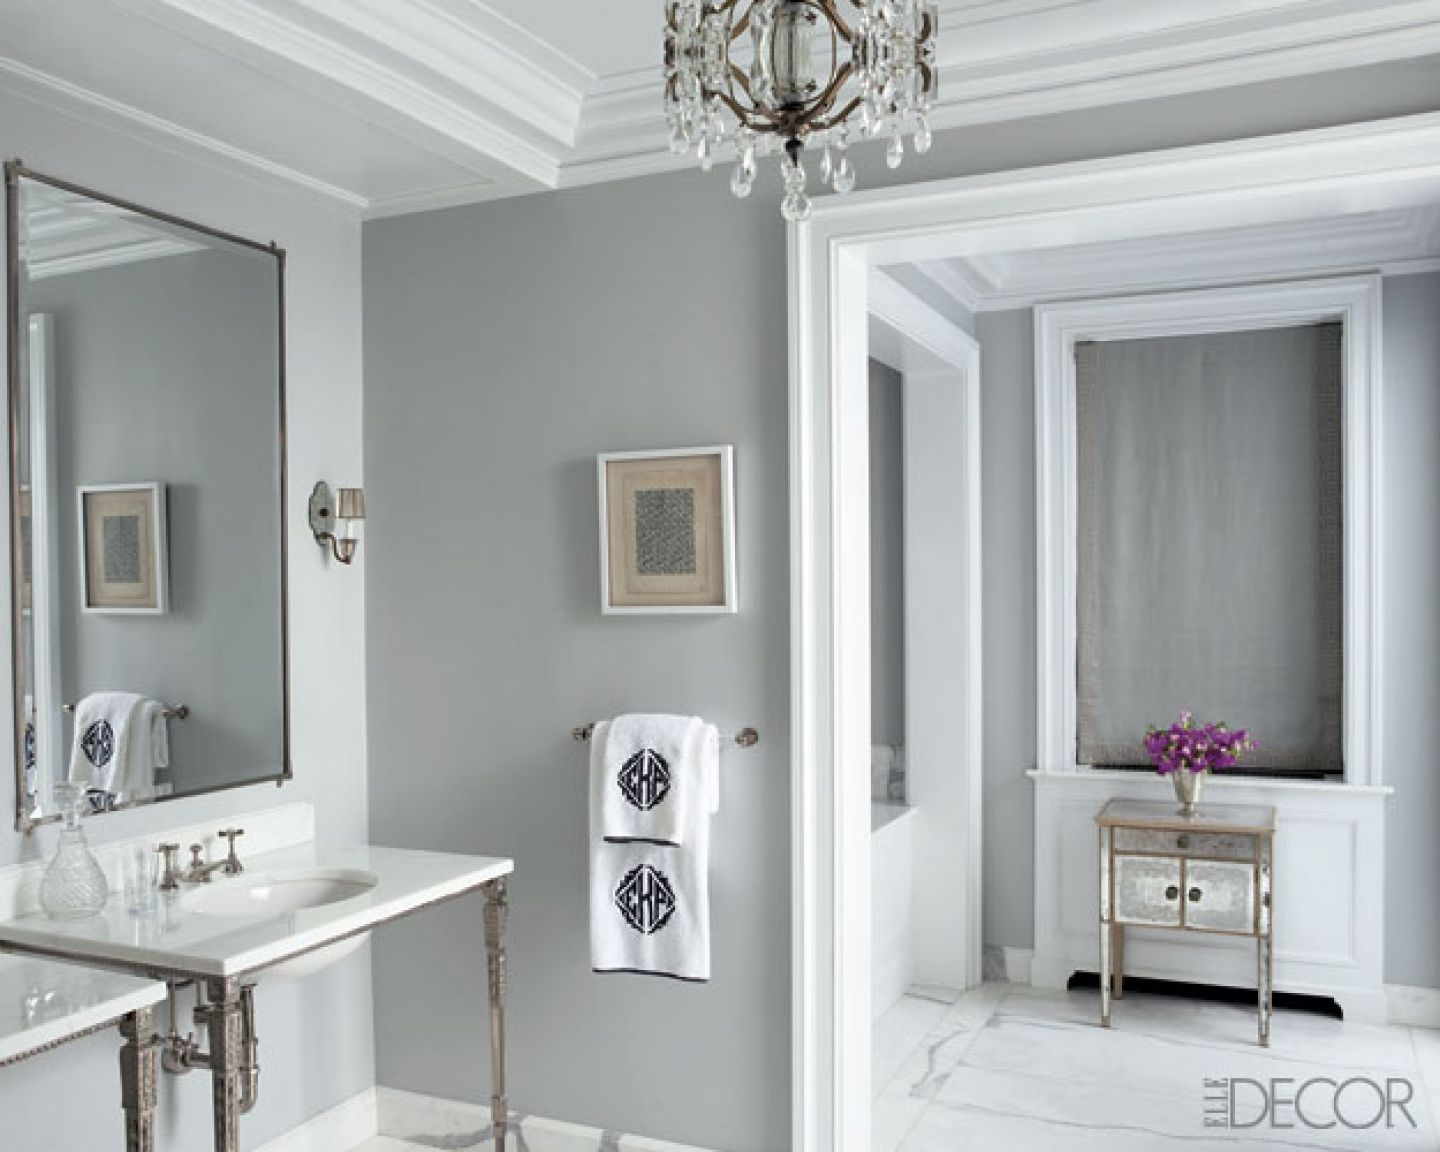 Bathroom paint grey - Elegant Bathroom Paint Idea With Grey Painted Wall And White Borders Also Two Sink Consoles With